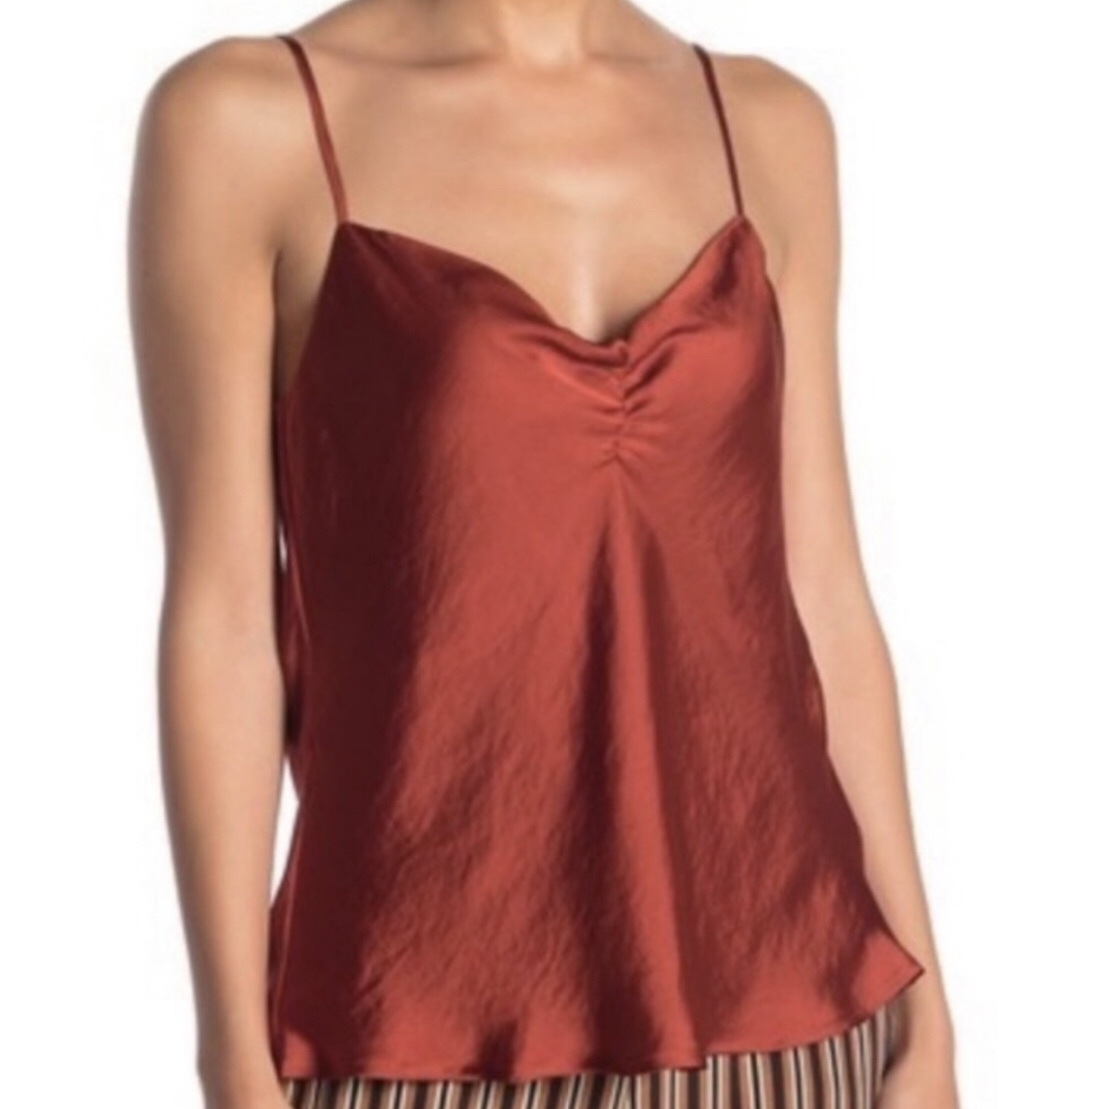 Product Image 1 - Gorgeous and flattering camisole in